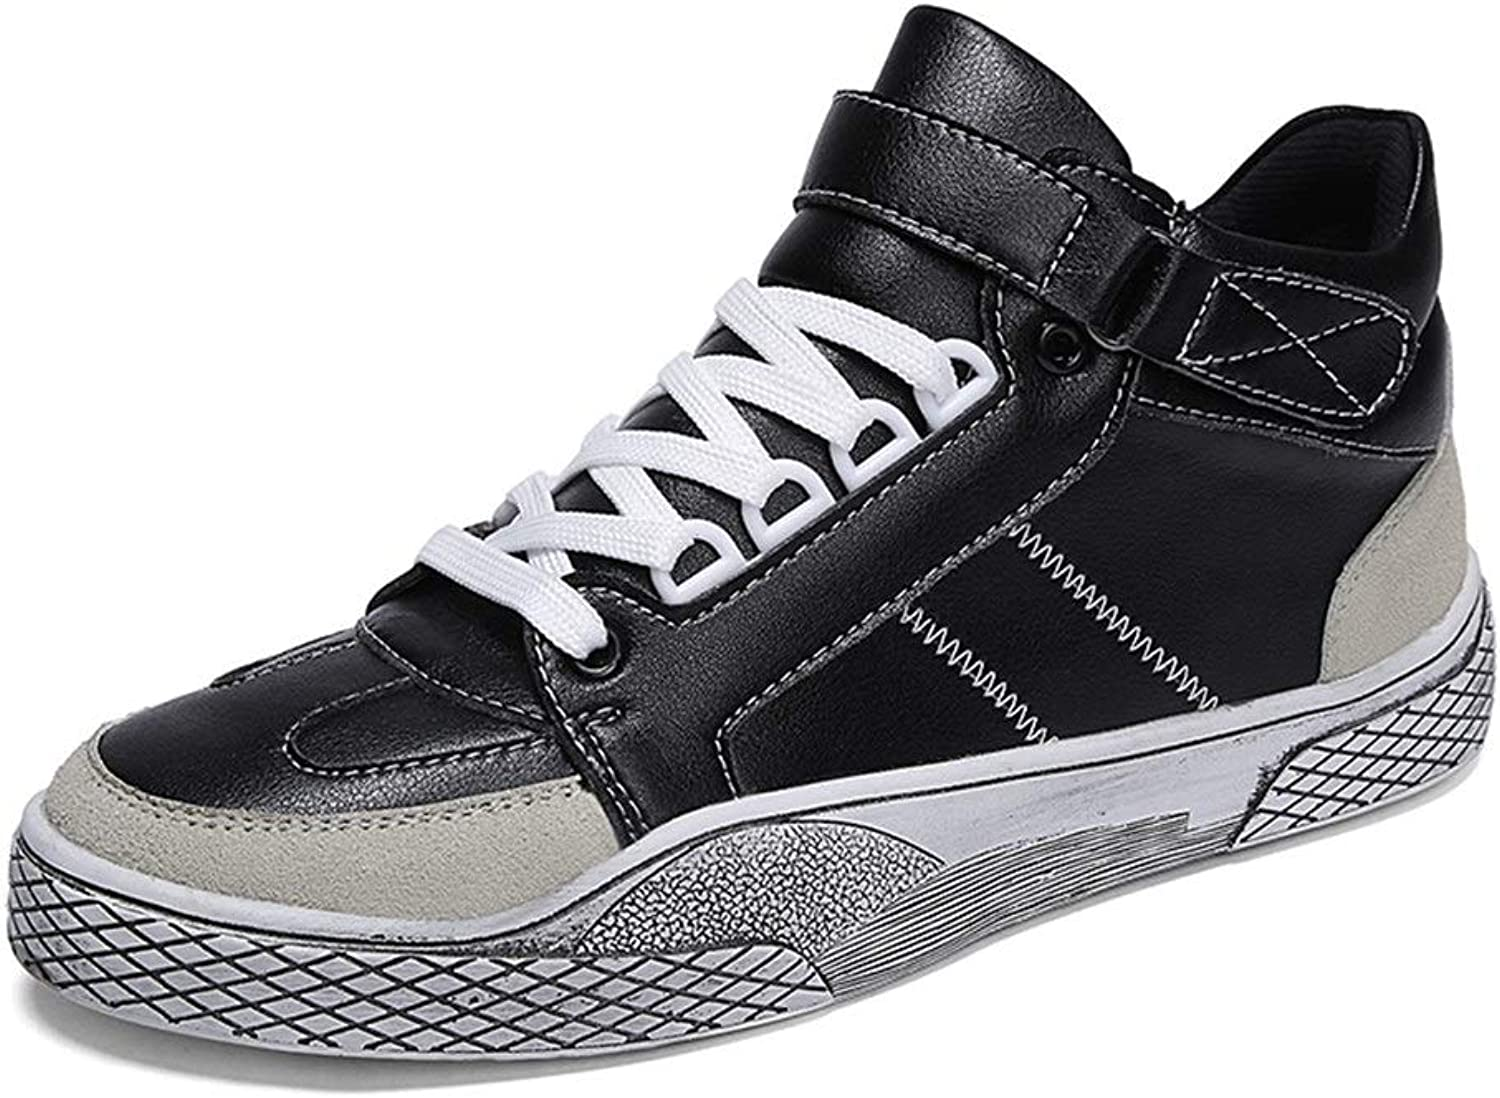 Easy Go Shopping Running Sneakers For Men Microiber Leather Mid-high Top Board shoes Anti-slip Flat Lace Up Round Toe Hook&loop Strap Cricket shoes (color   Black, Size   7.5 UK)